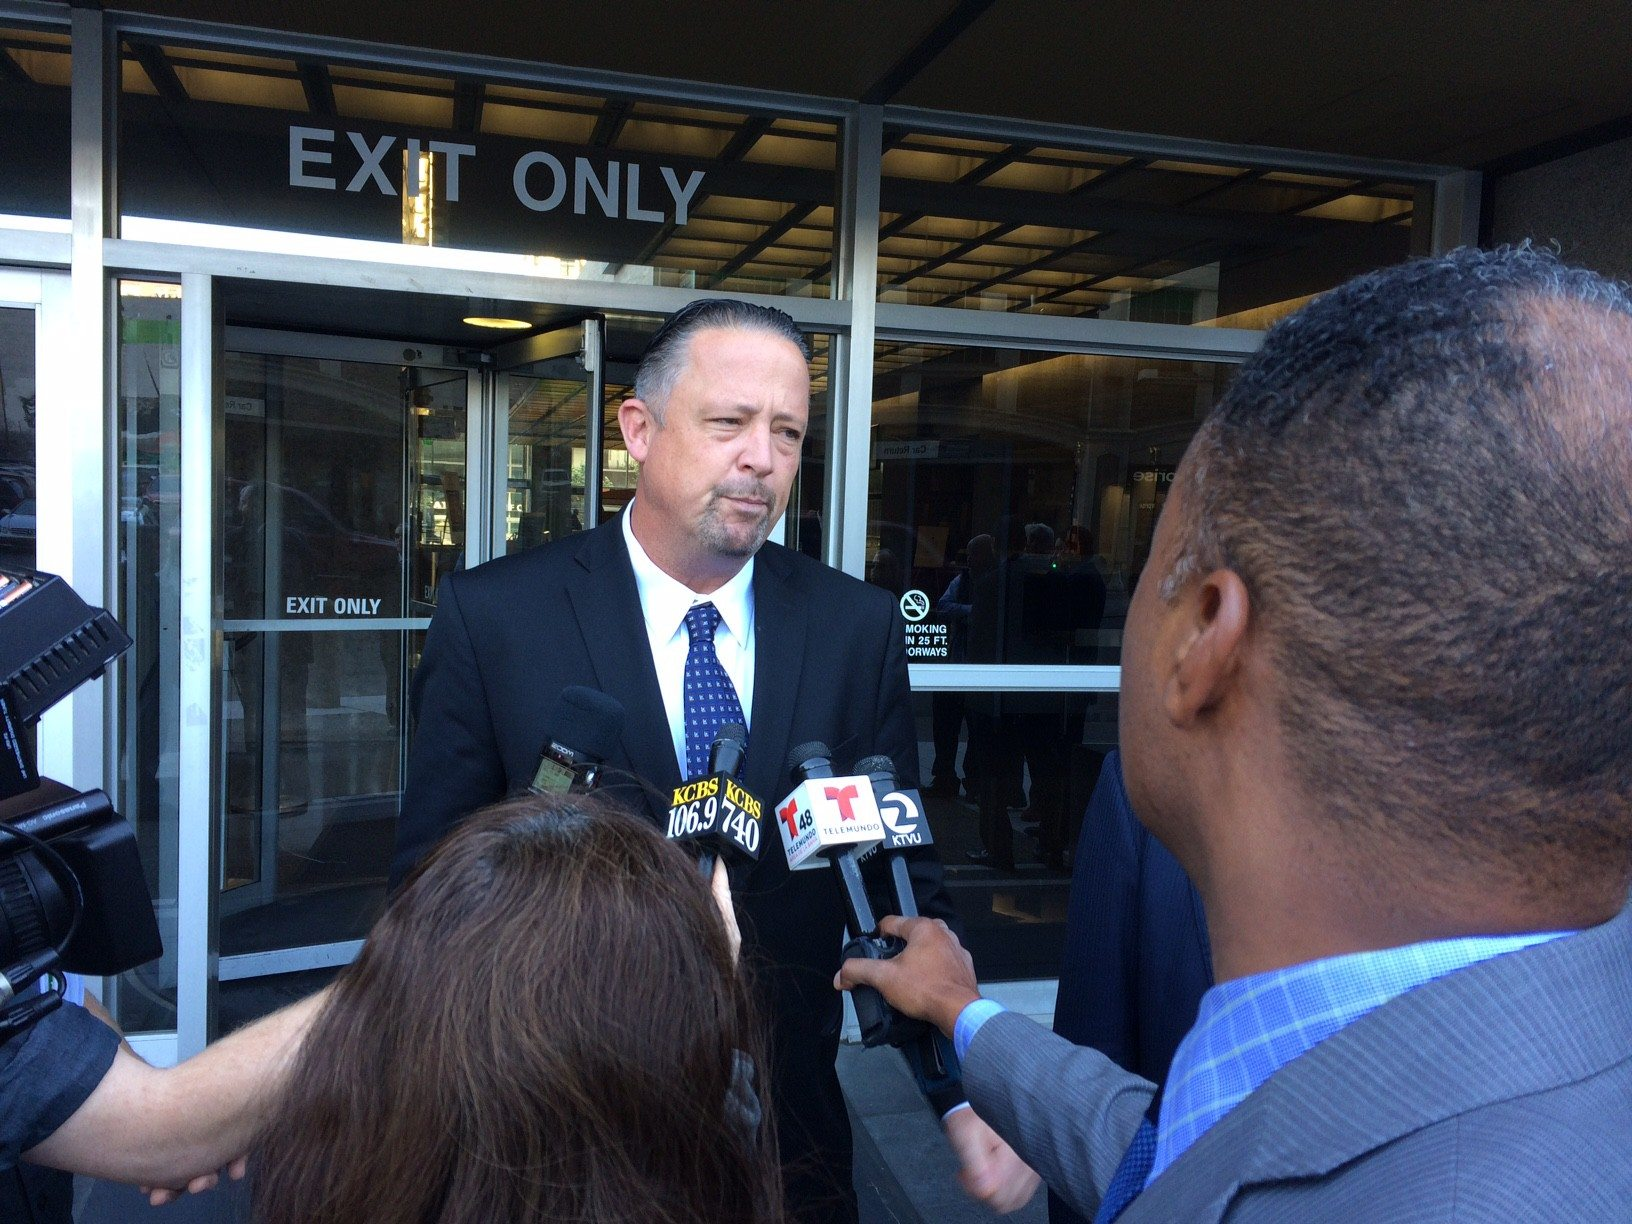 Jonah Owen Lamb/S.F. Examiner file photoIan Furminger speaks to reporters after his sentencing on corruption charges in February.